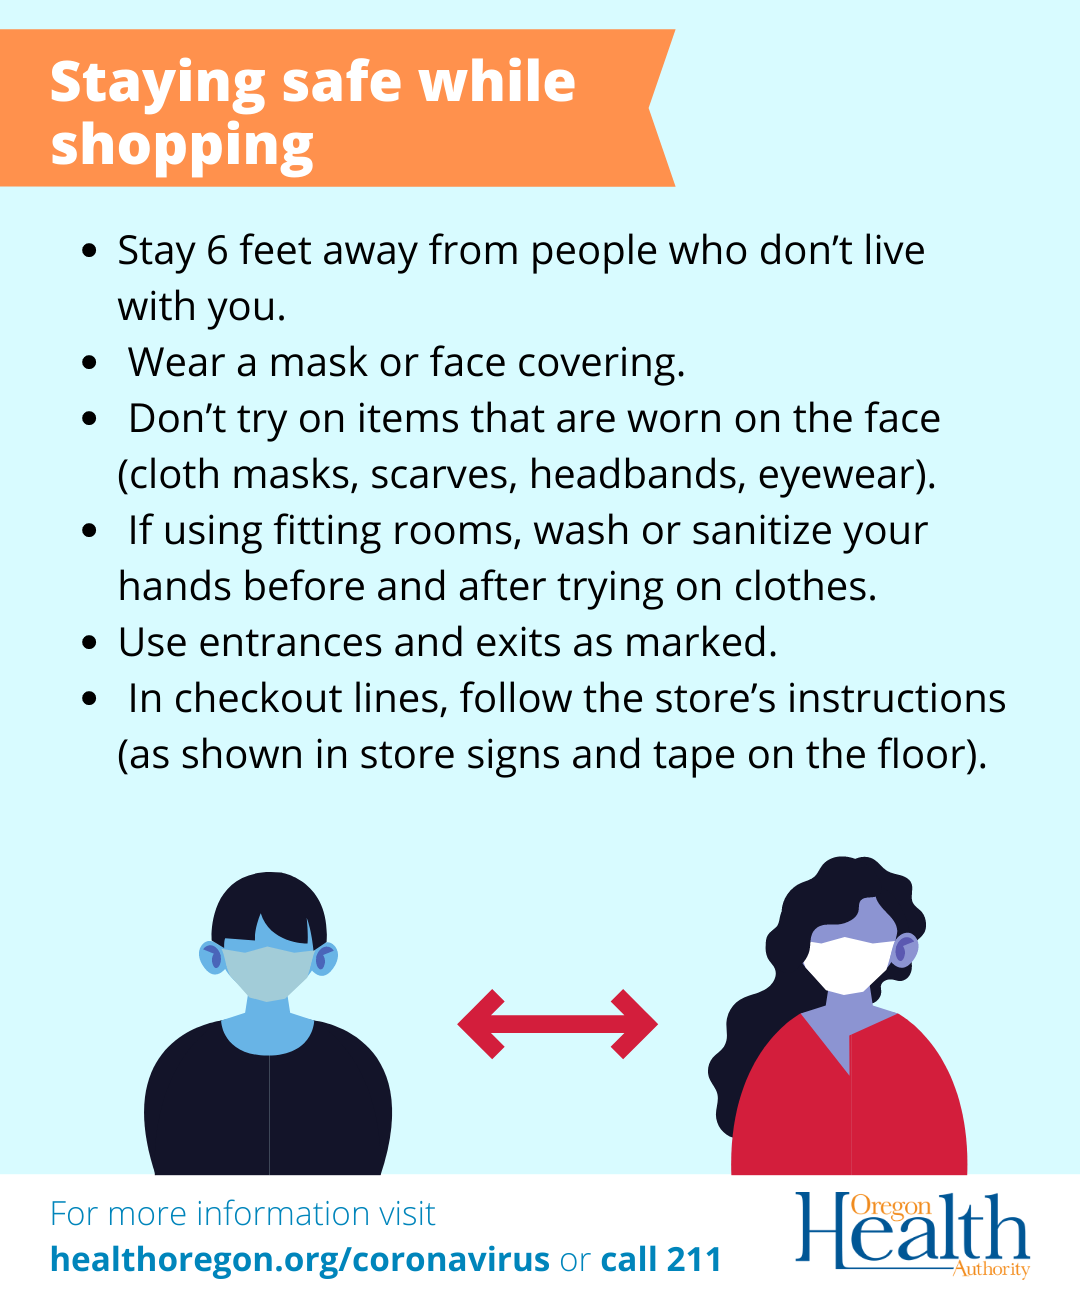 Staying safe while shopping